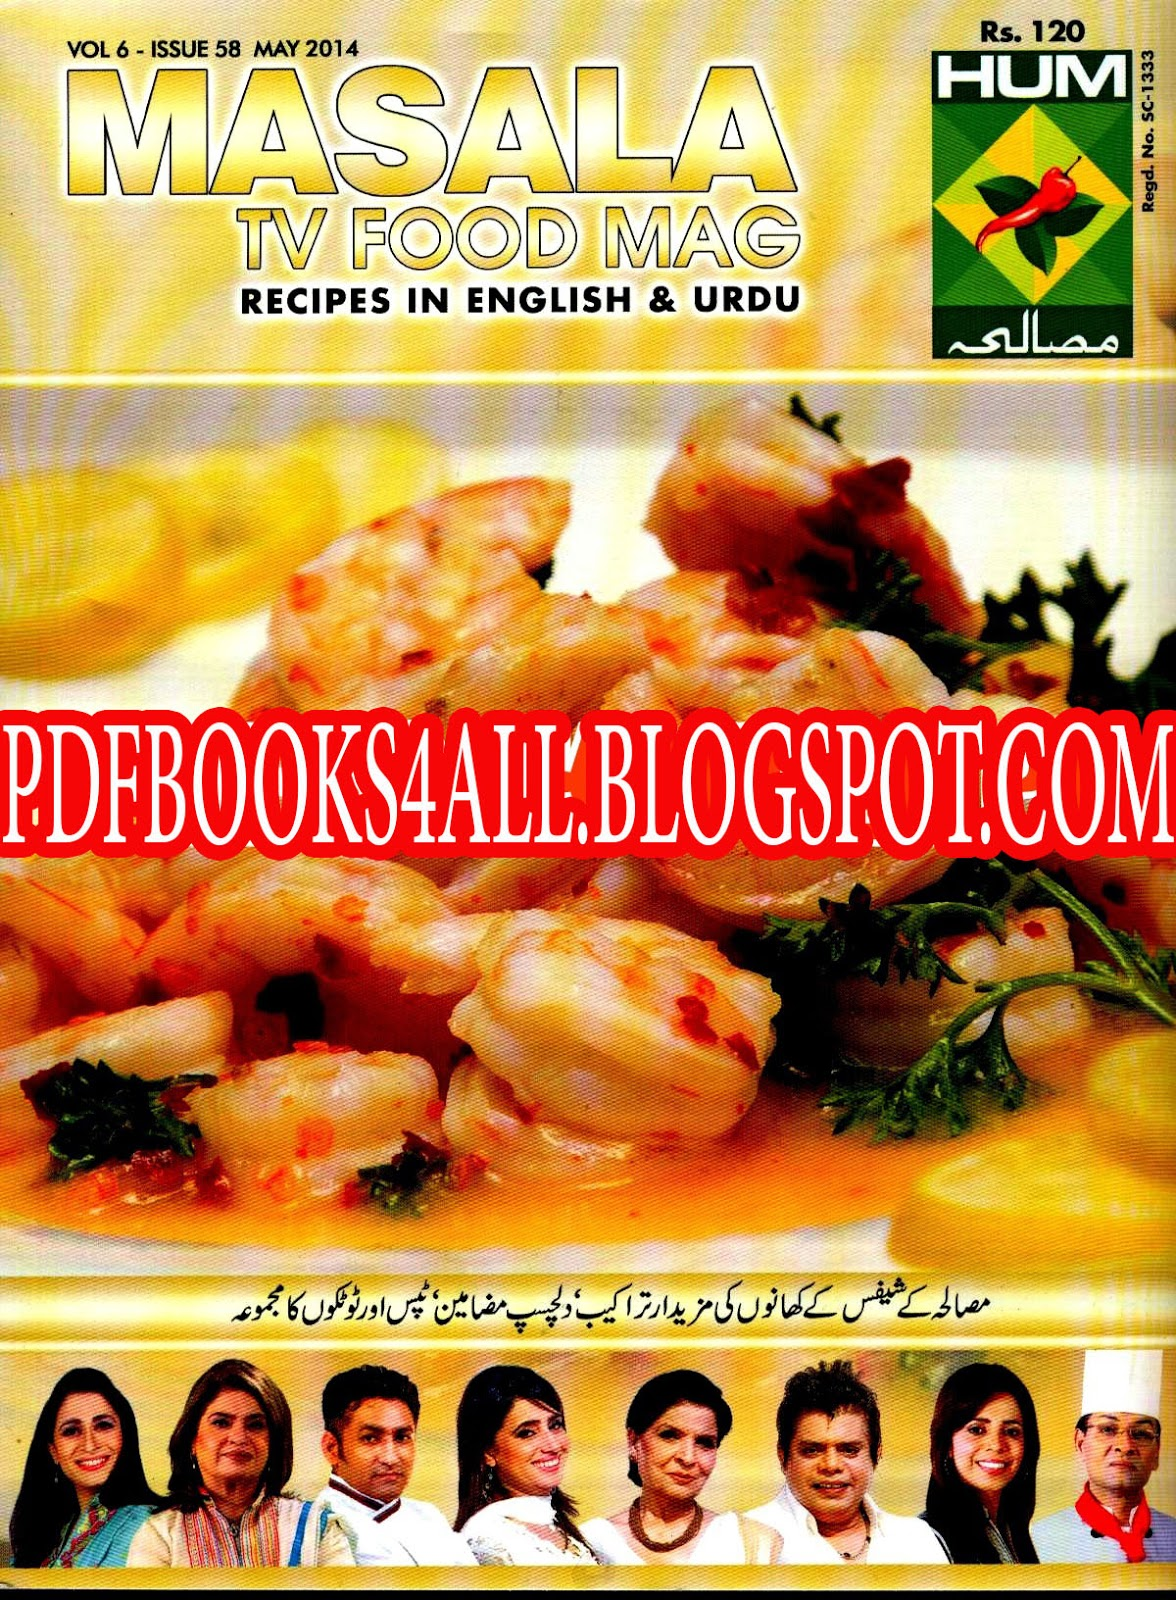 Masala food magazine november 2015 eidion pdf book free download free download masala food magazine november 2015 edition forumfinder Image collections